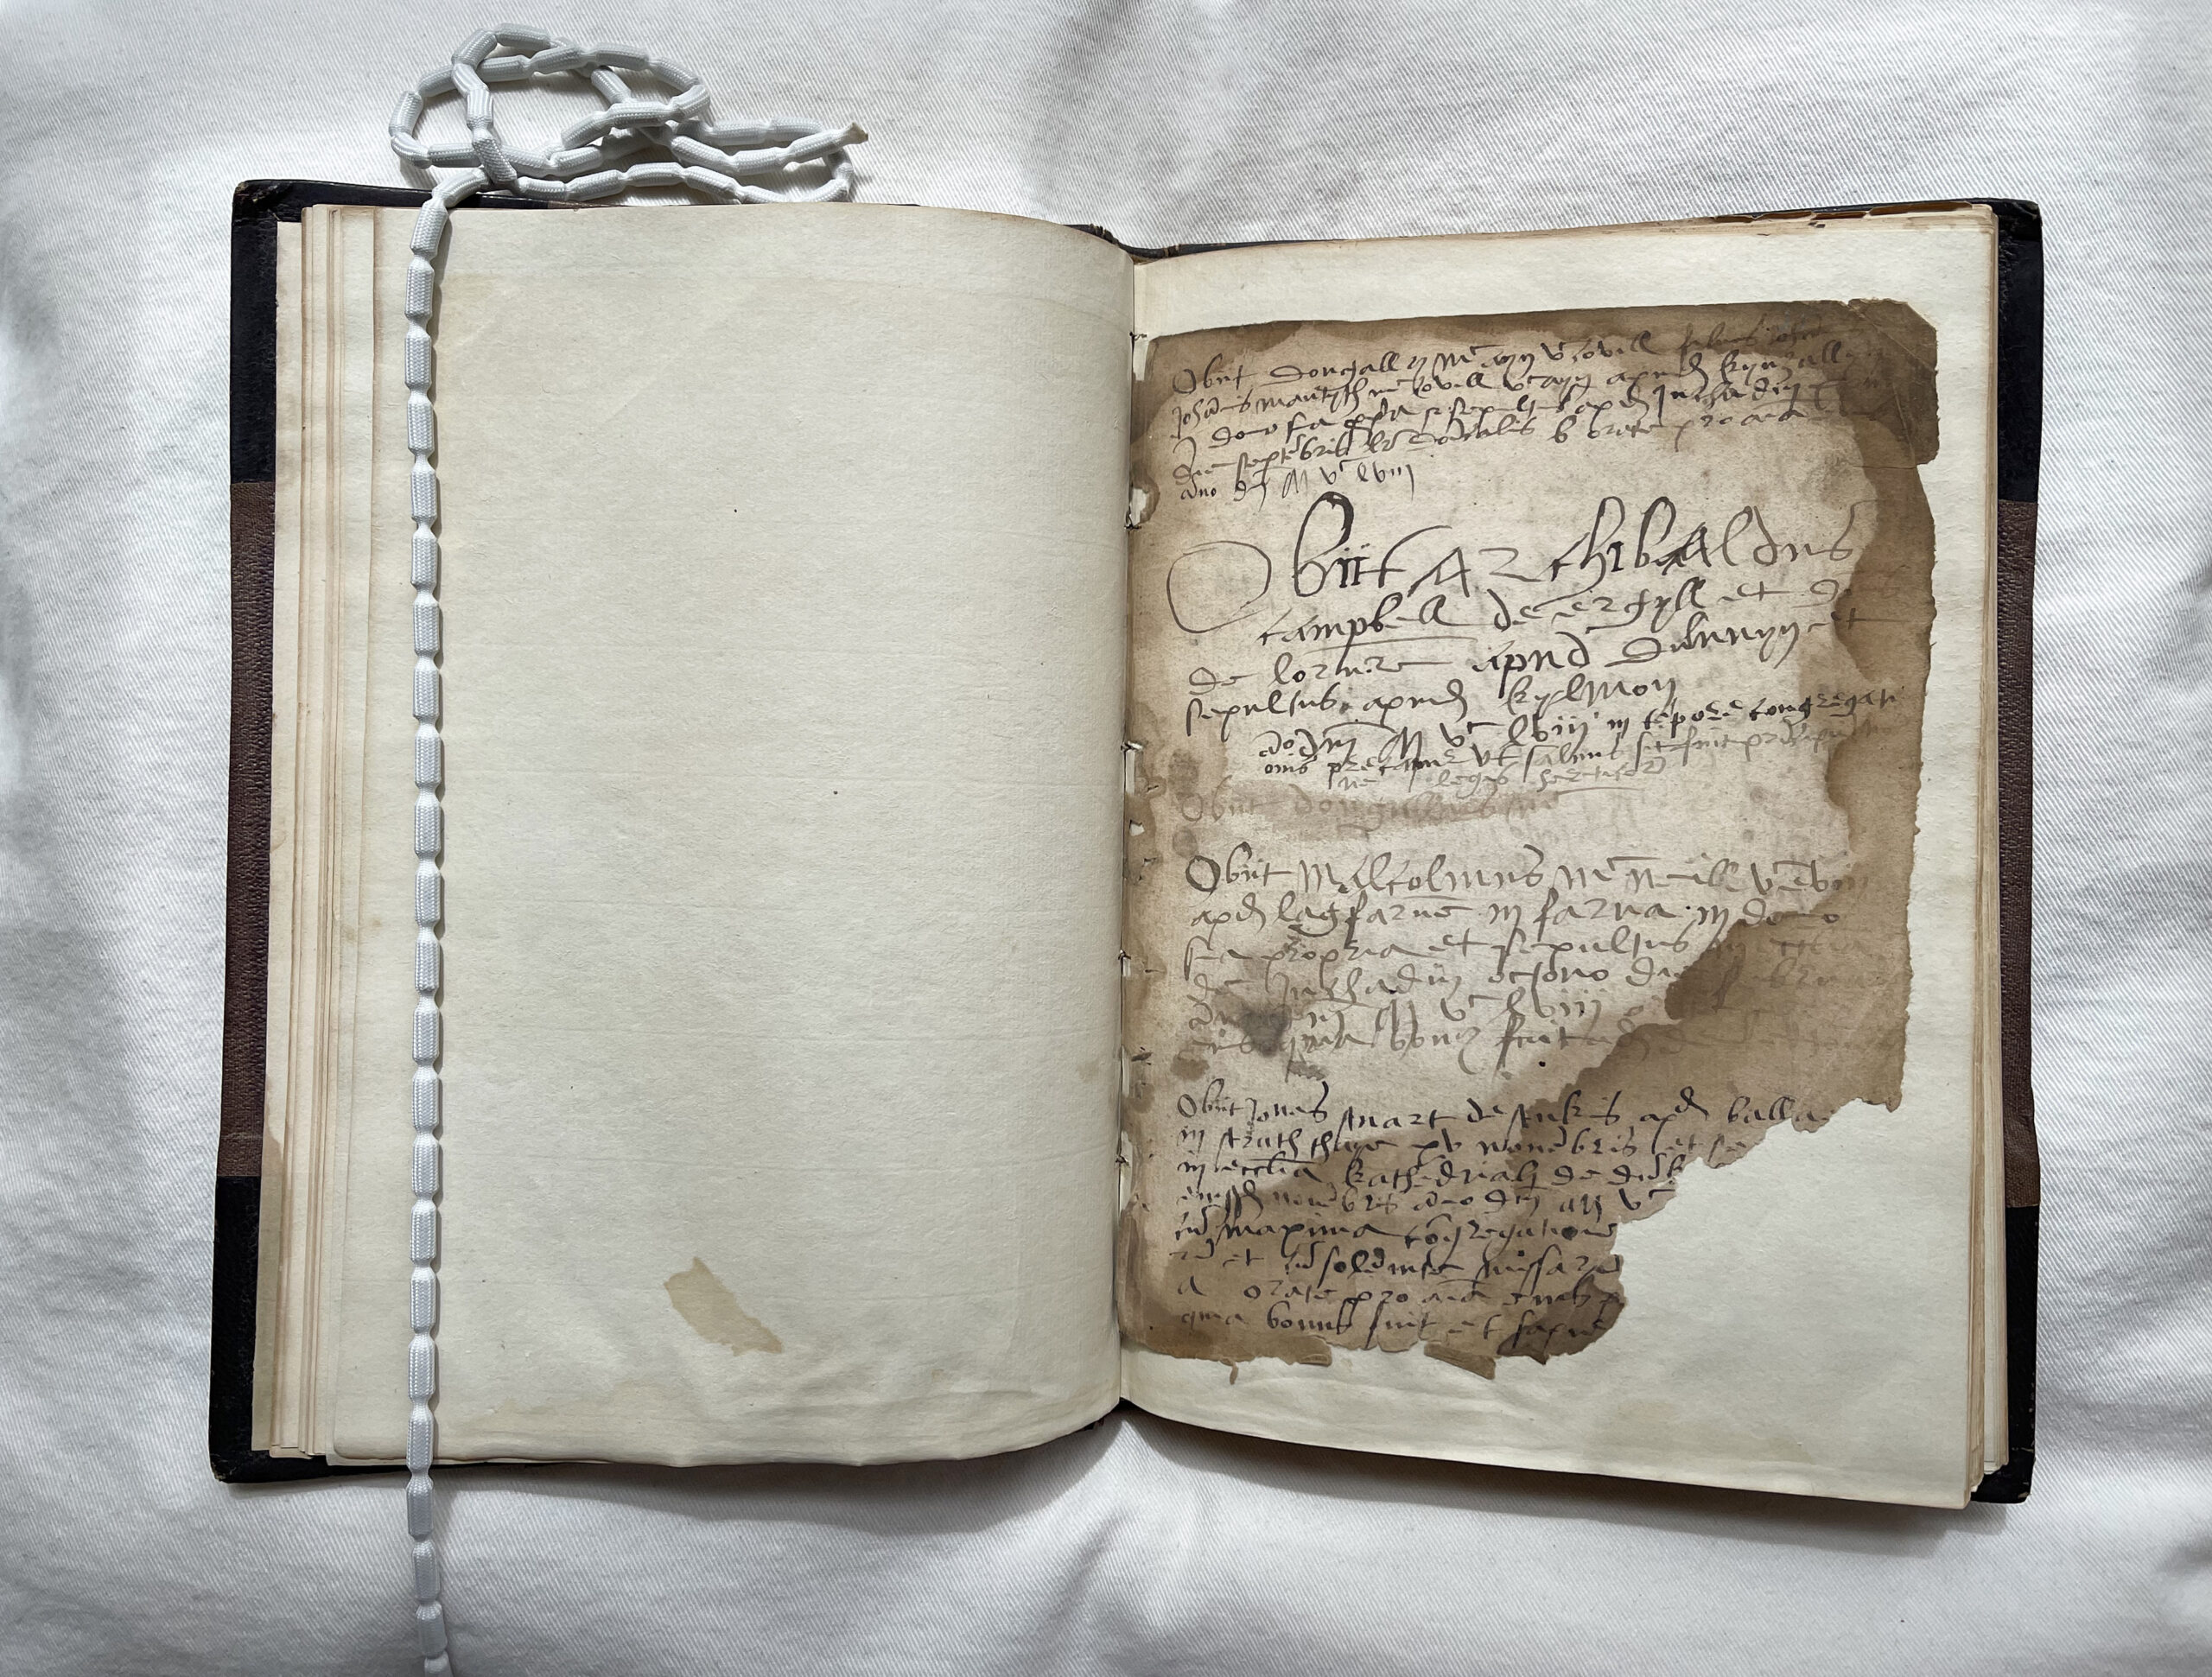 National Library of Scotland acquires important 16th-century manuscript